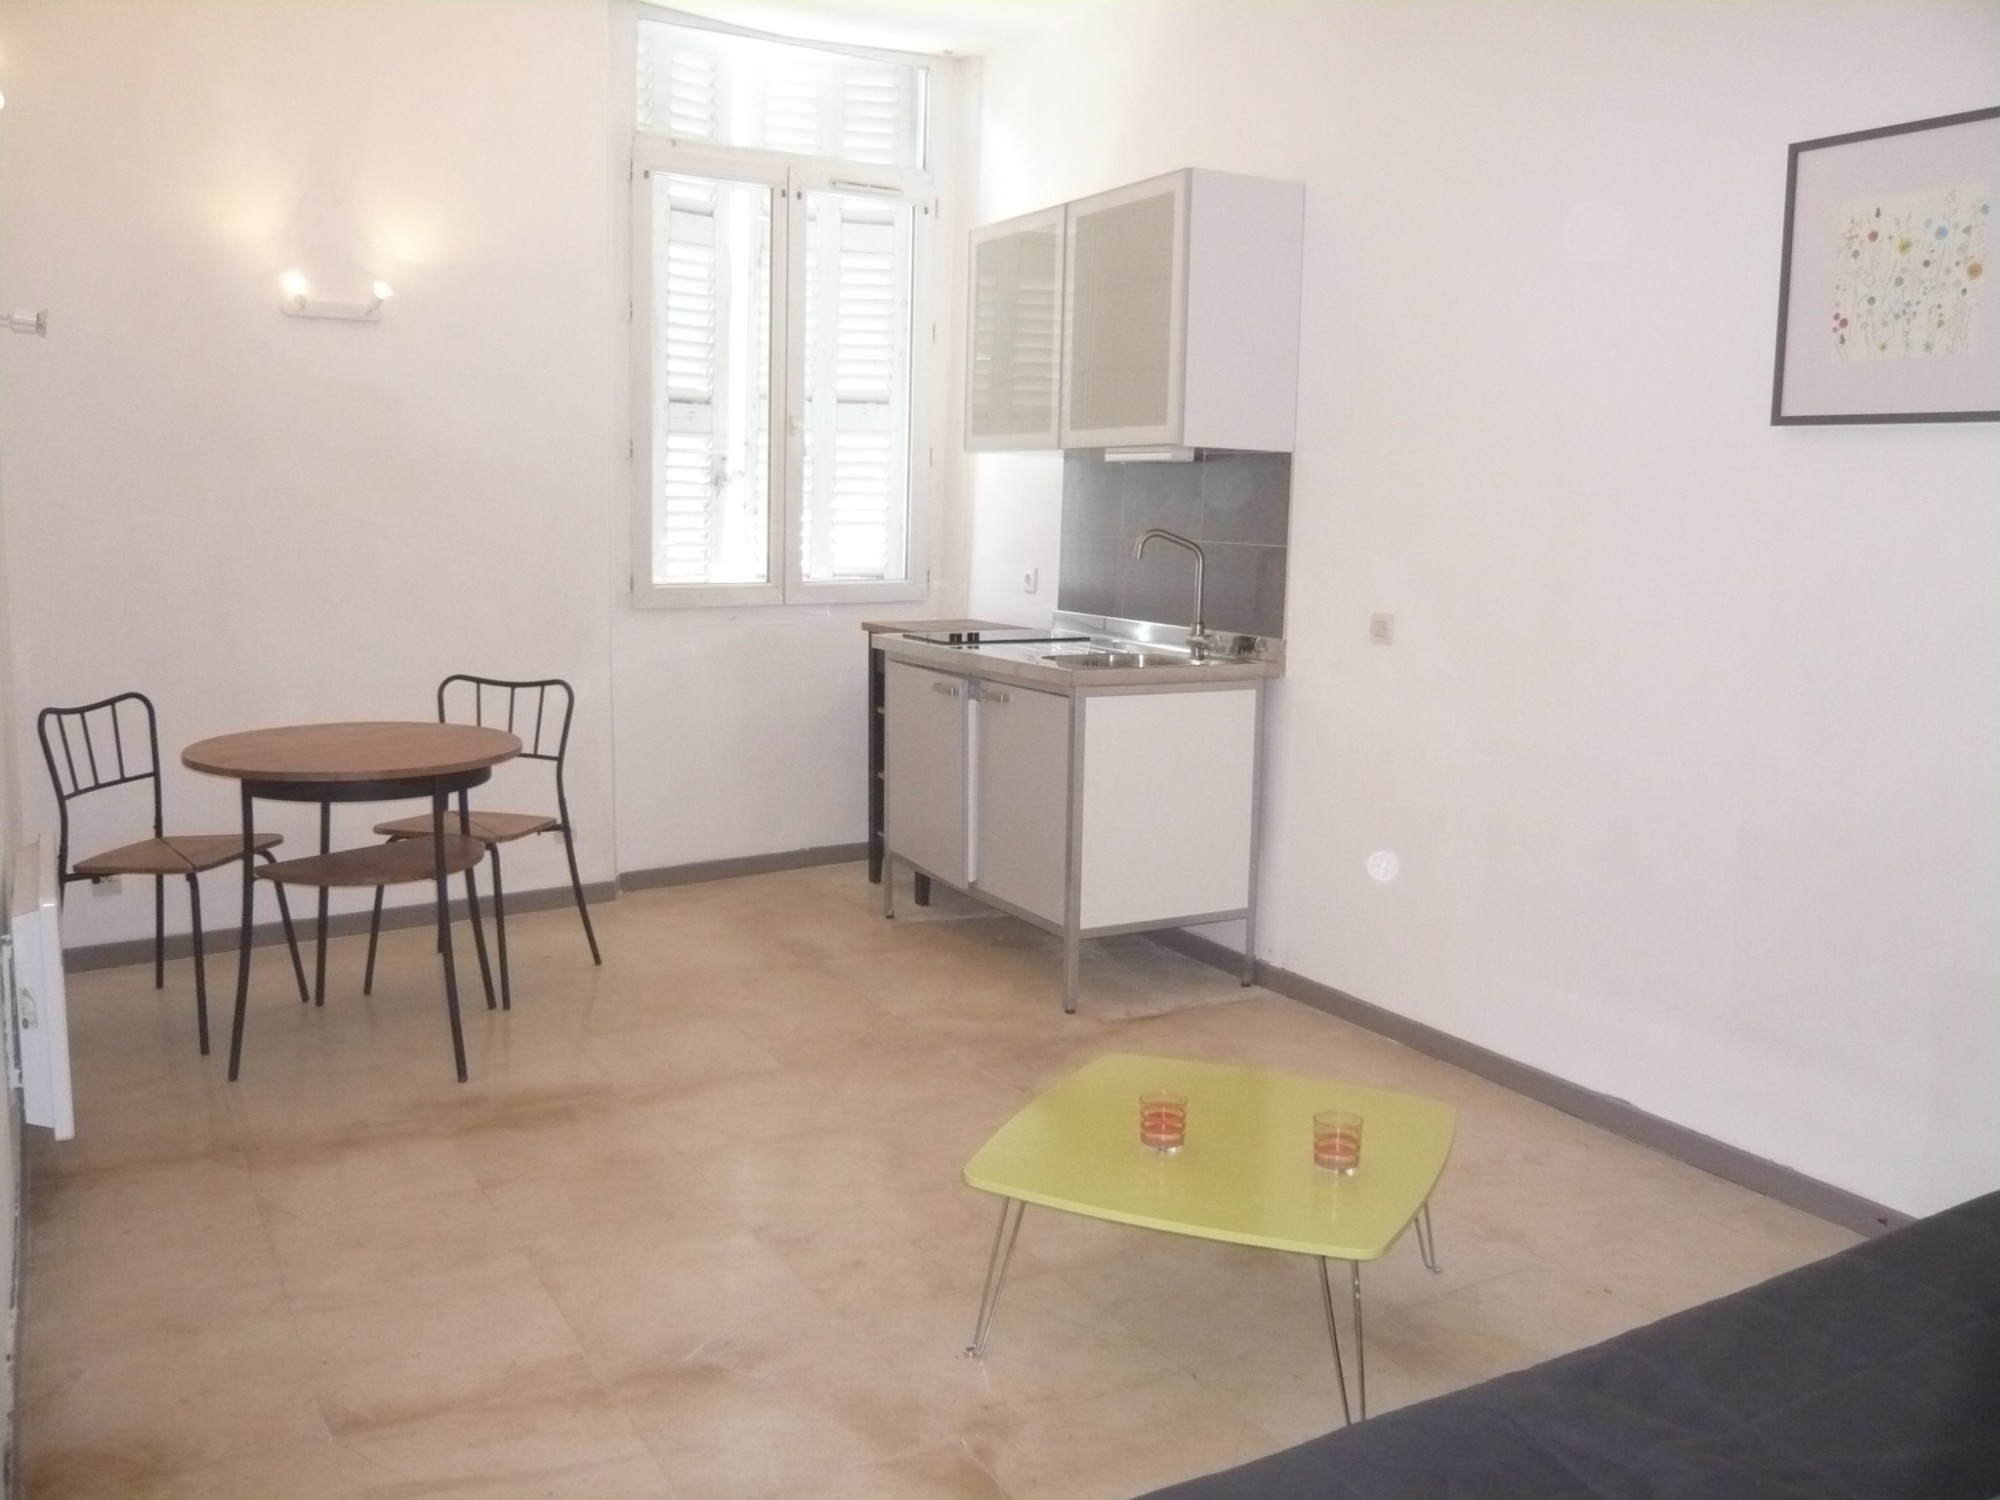 Ventes appartement t1 f1 marseille 07 quartier saint for Appartement meuble marseille